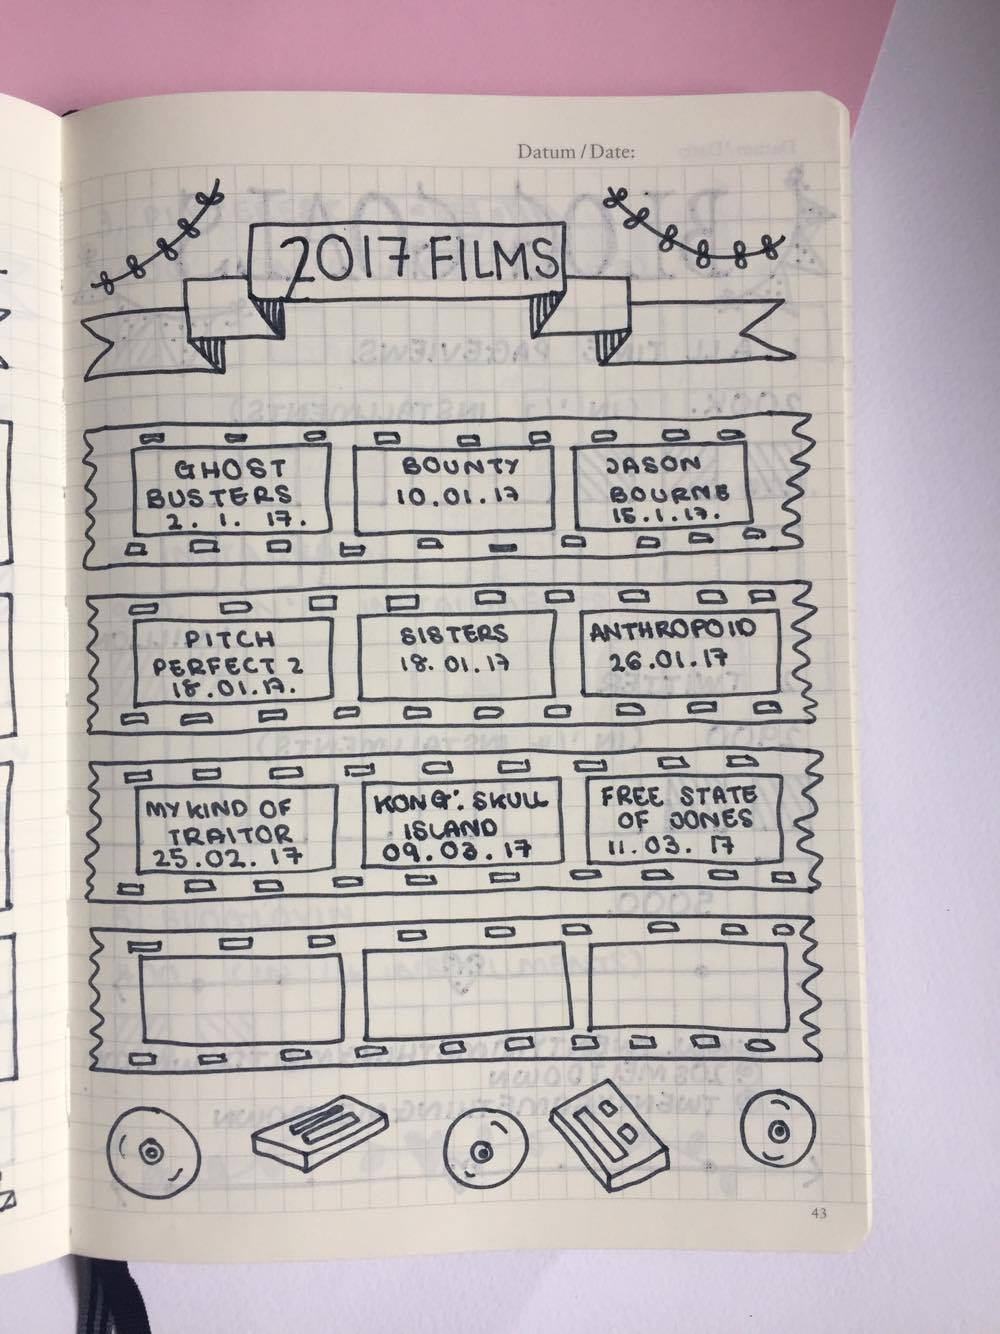 Films Watched Tracker.